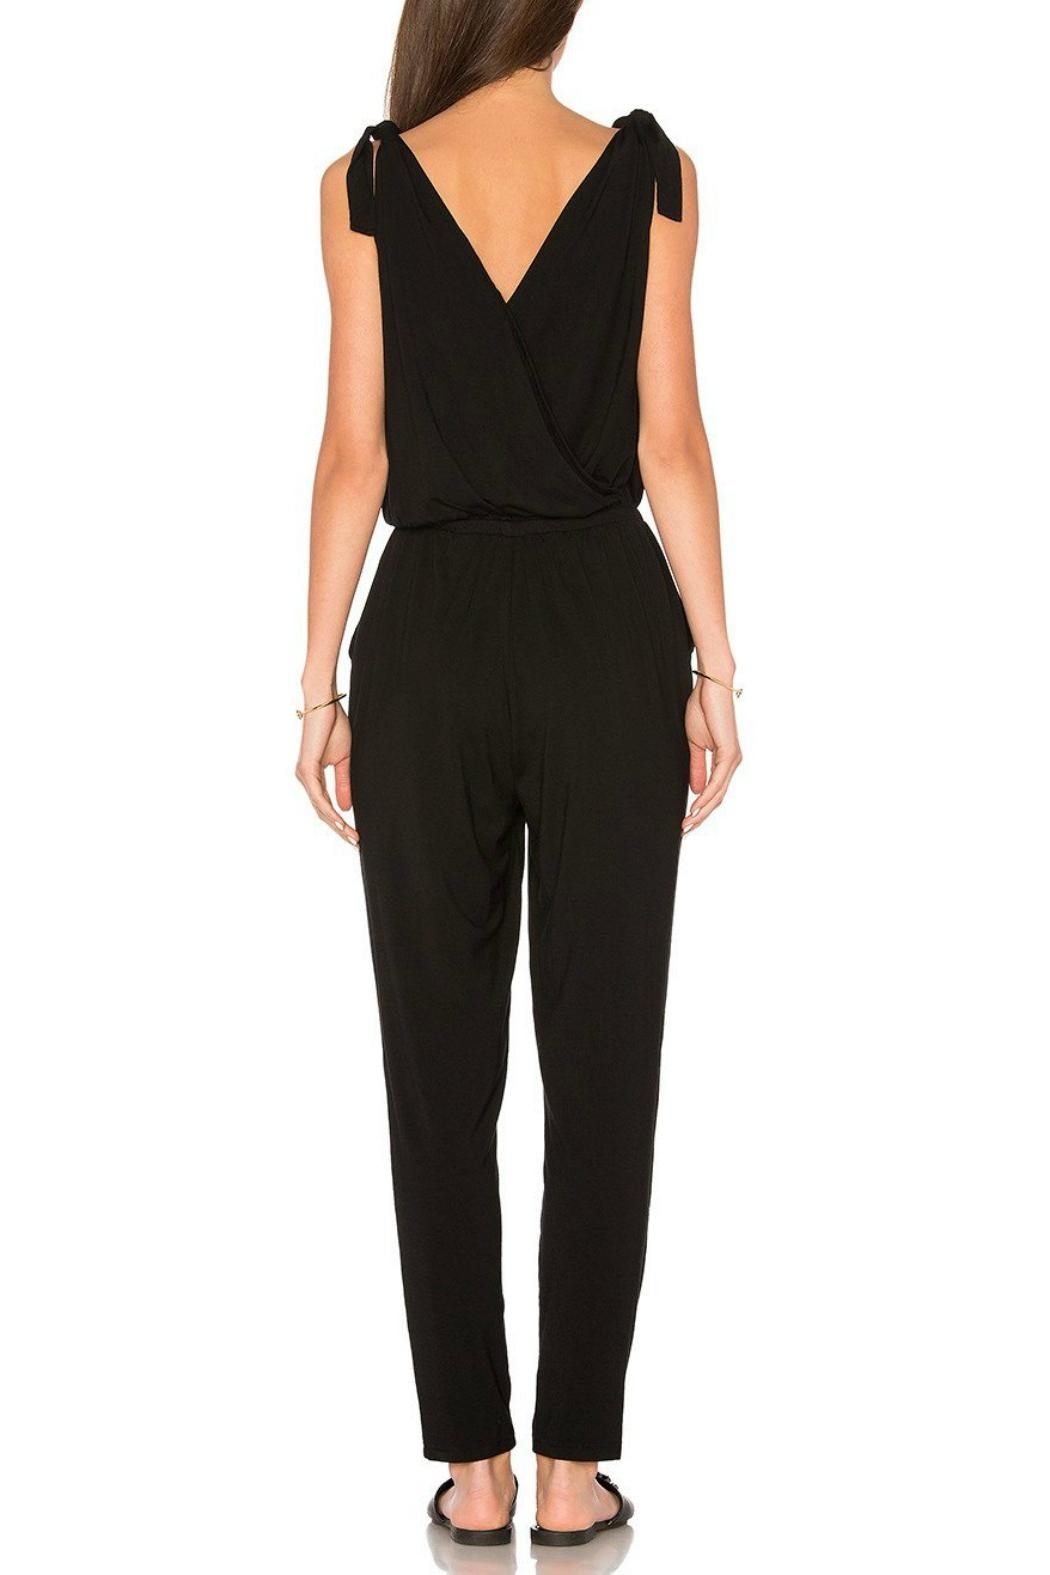 Cupcakes & Cashmere Dallas Jumpsuit - Side Cropped Image